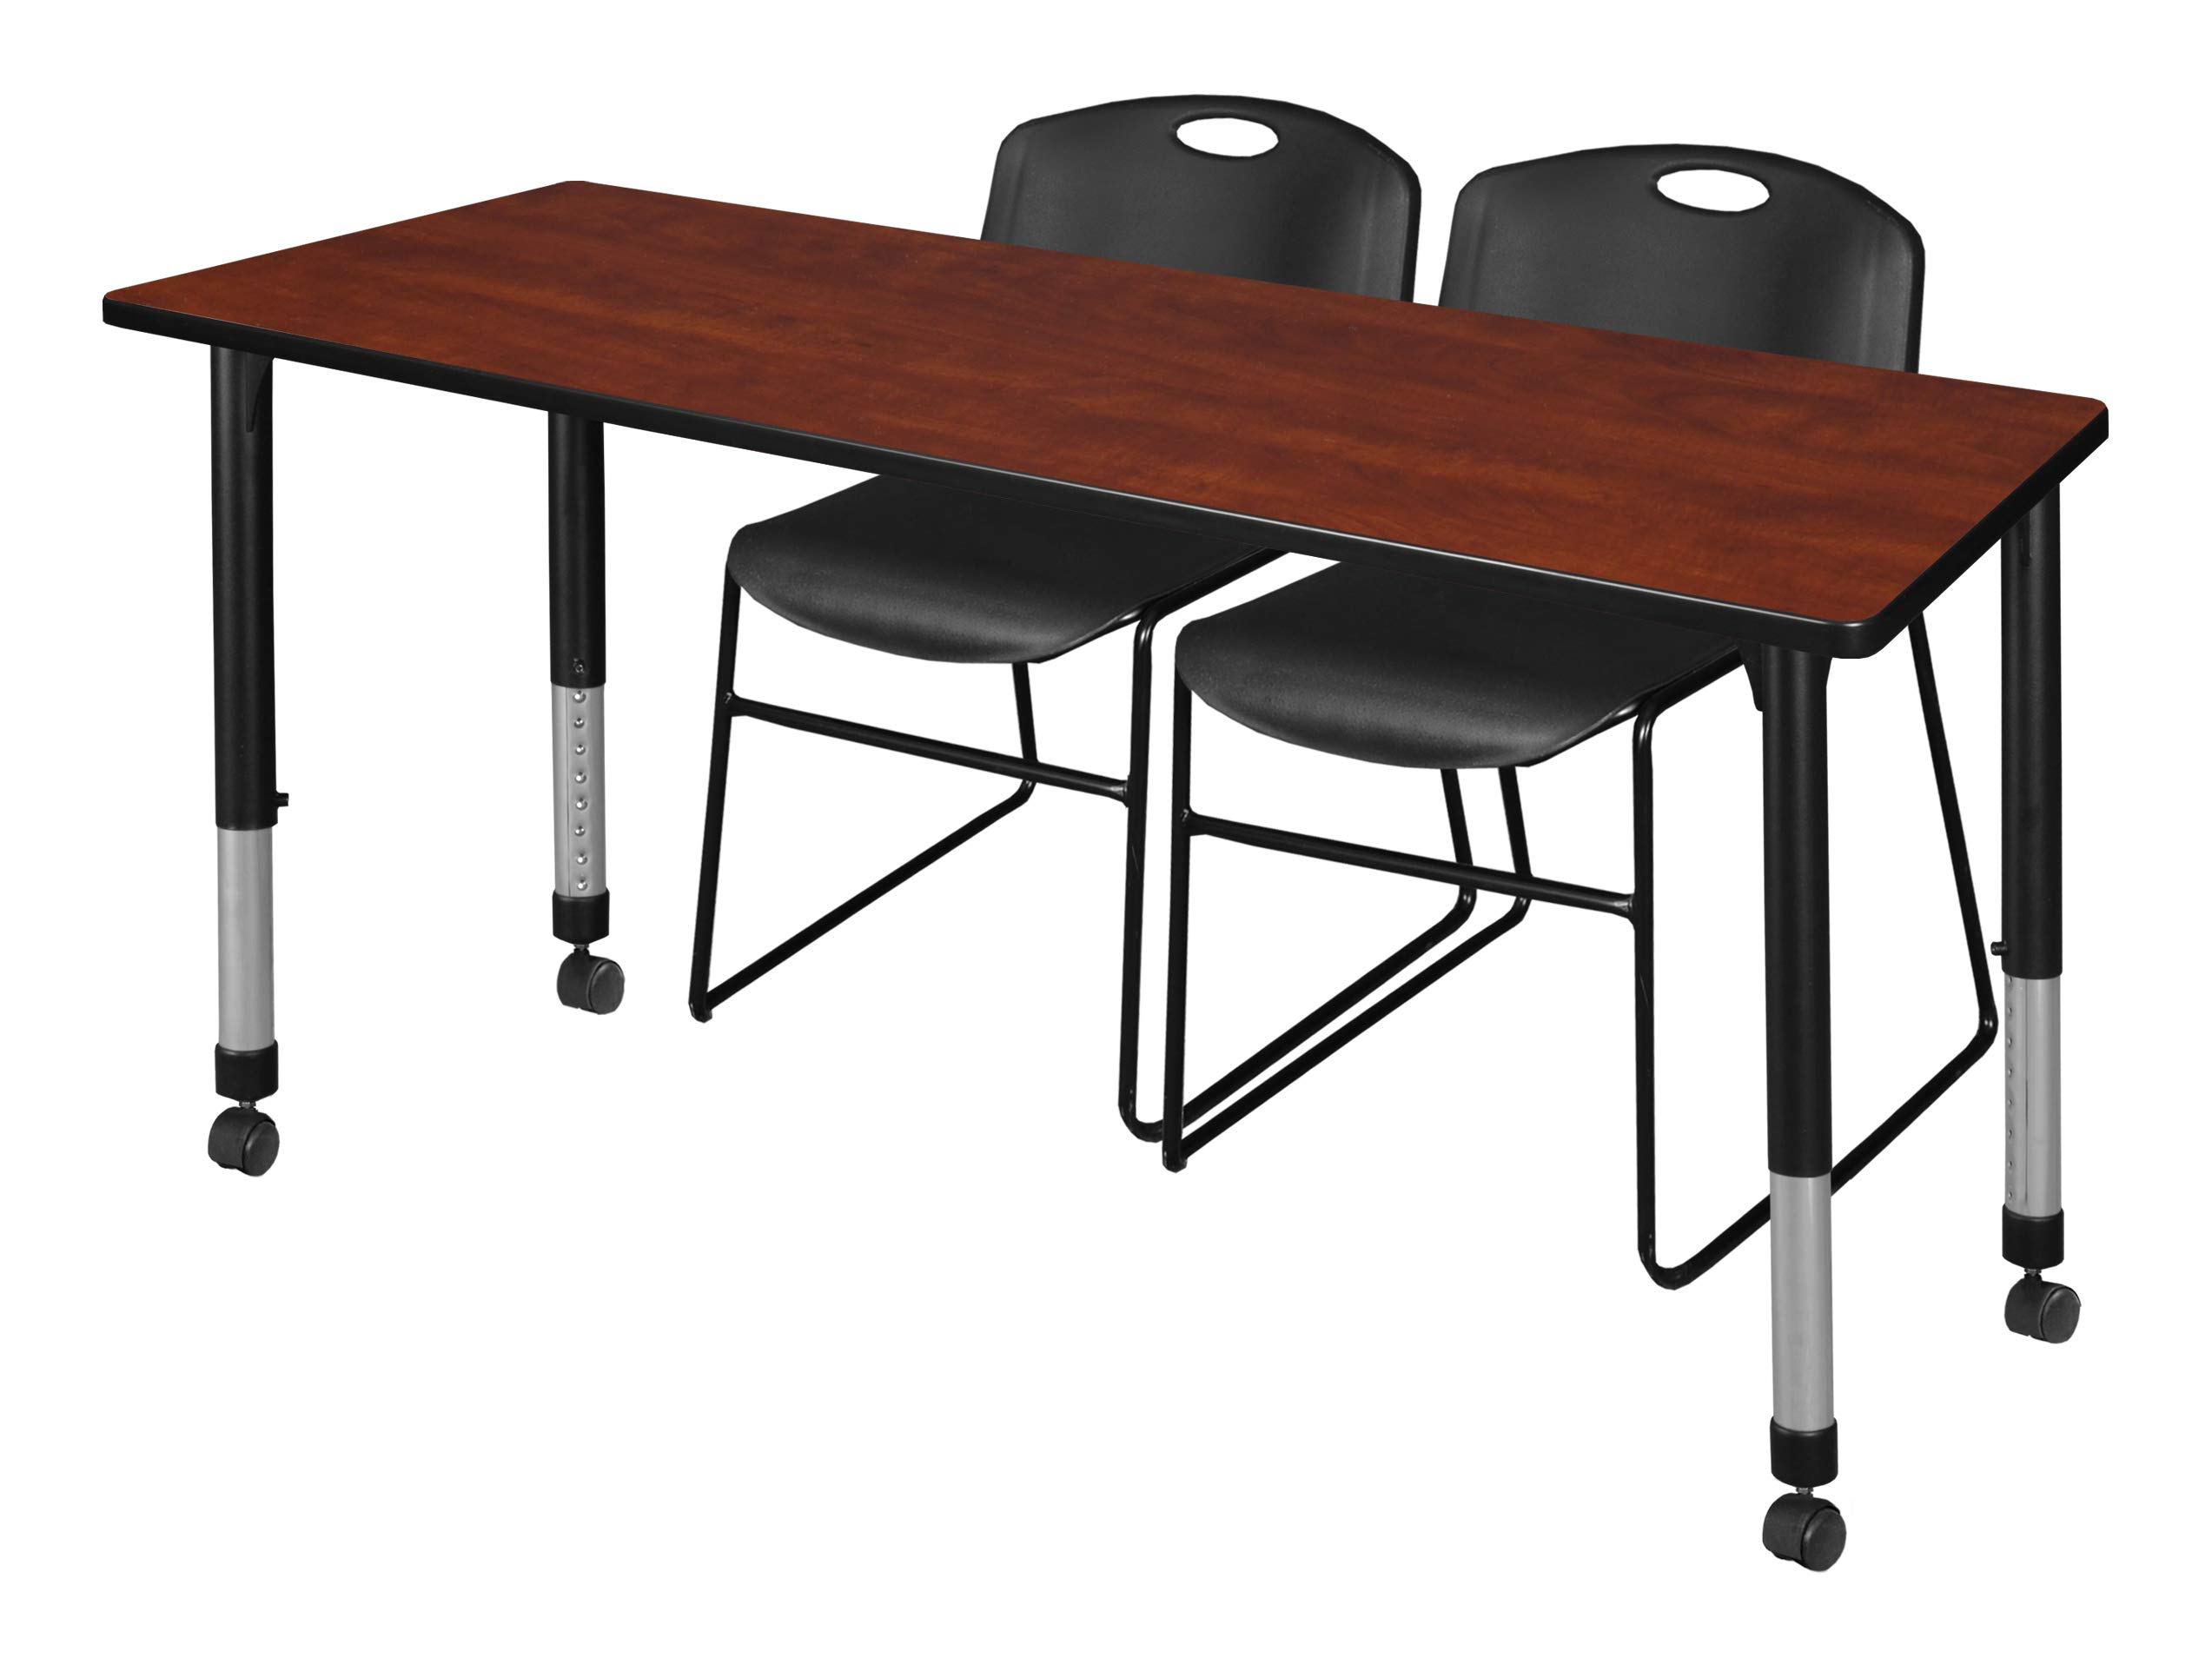 Regency MT6630CHAPCBK44BK Kee Height Adjustable Mobile Classroom Table Set with Two Zeng Chairs, 66'' x 30'', Cherry/Black